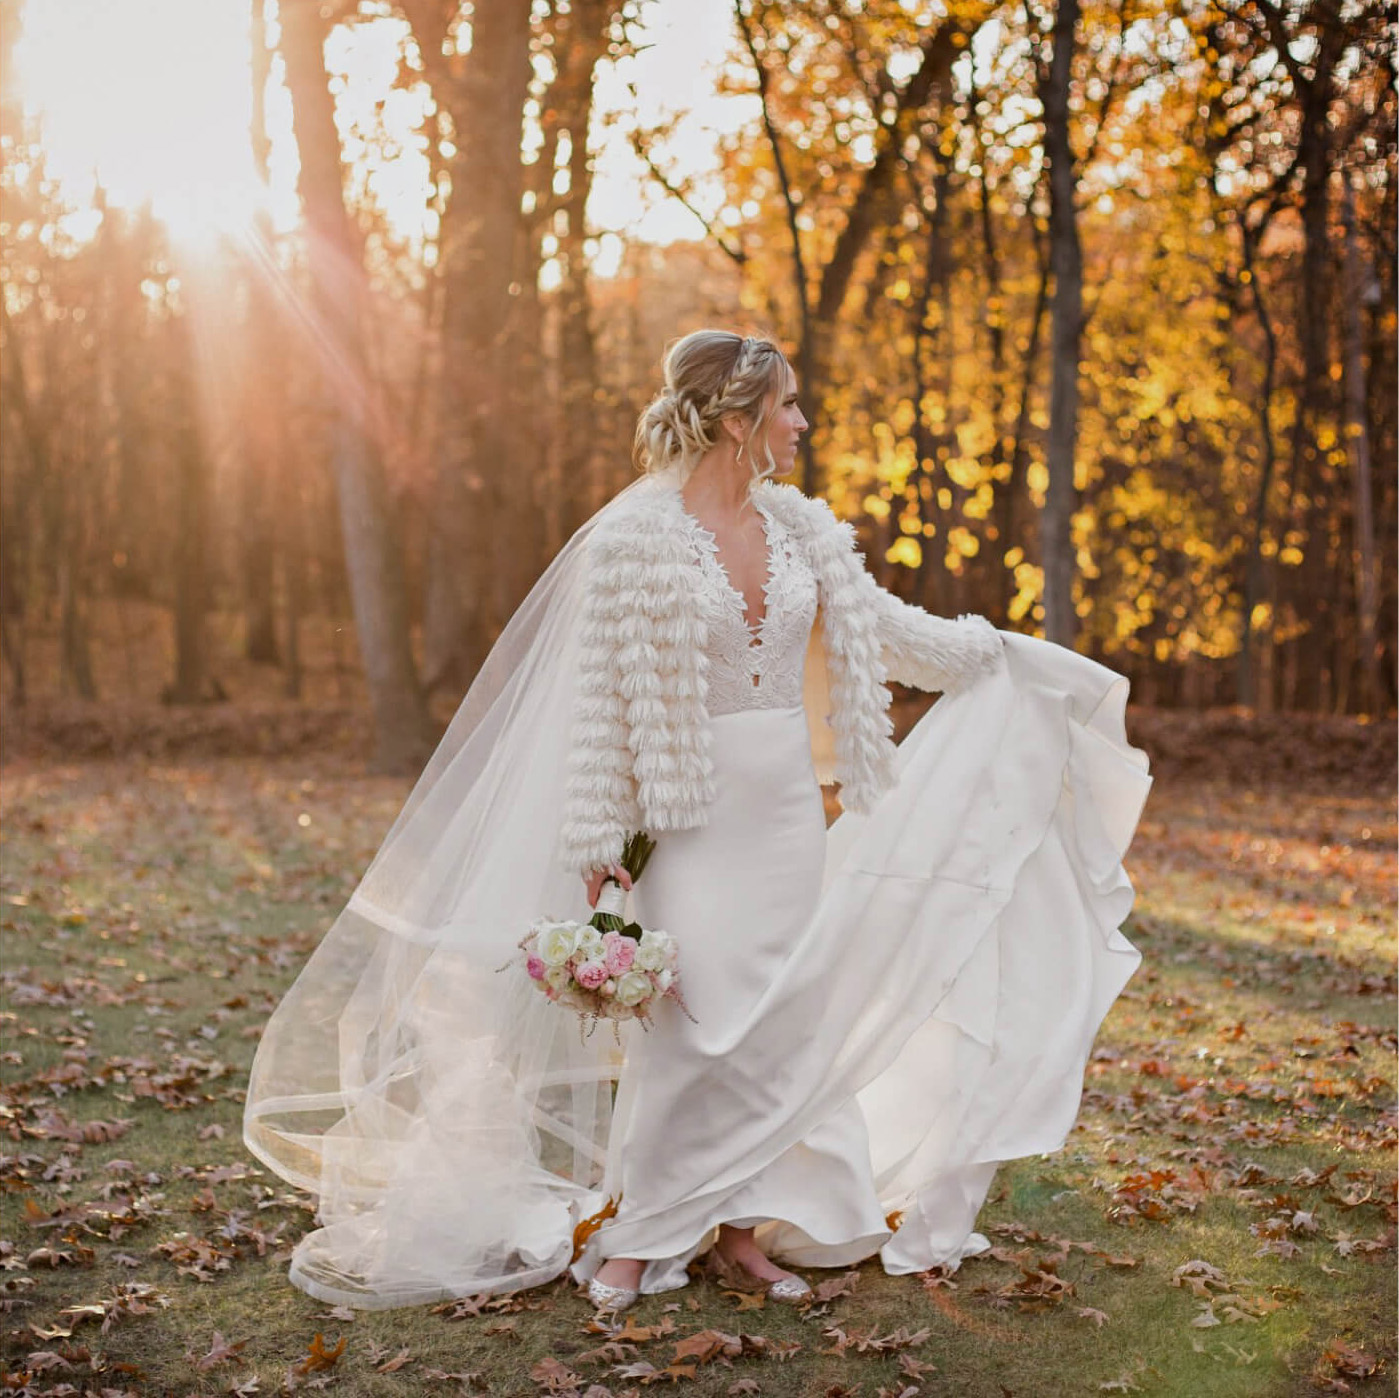 Photo of Bride in white gown